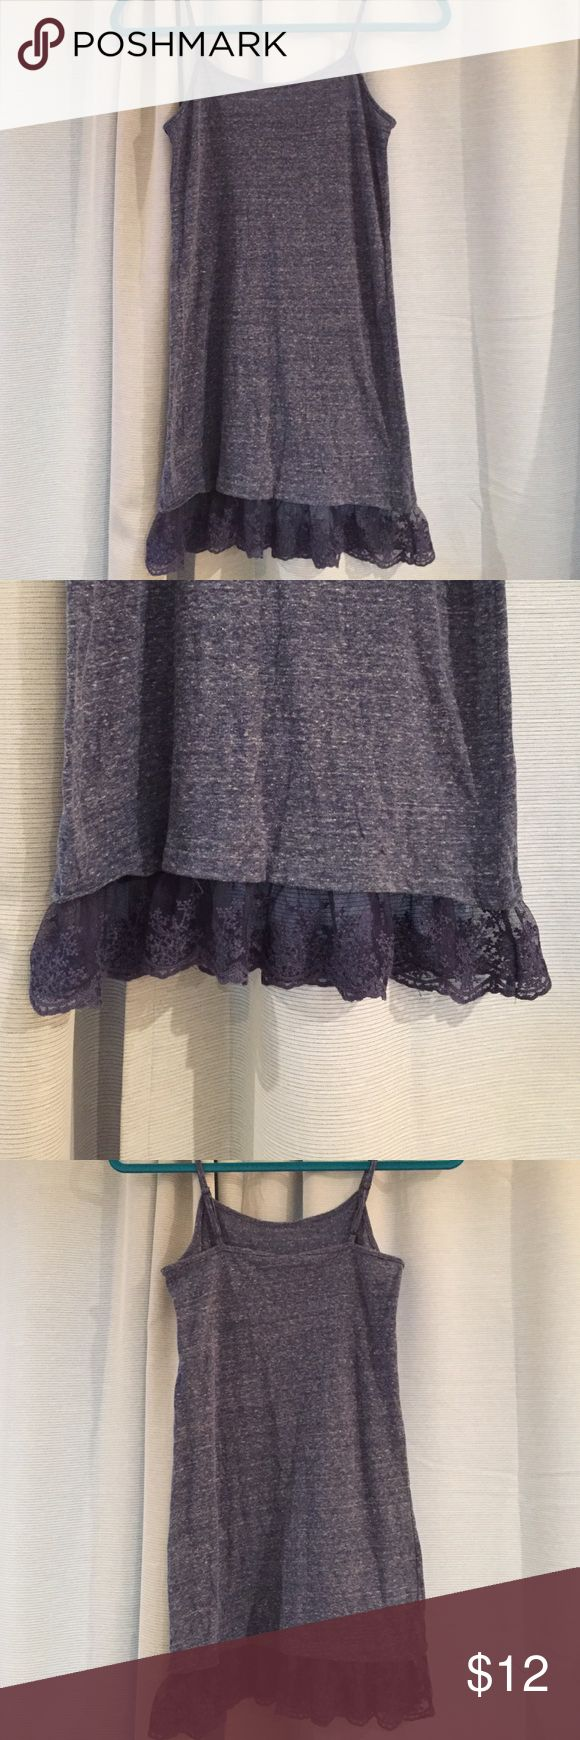 NWOT. Adorable Navy Mini Dress. NWOT. Adorable Navy Mini Dress with Lace Detail. Would be an adorable bikini cover up for beach or pool days. Extremely soft material. Dresses Mini